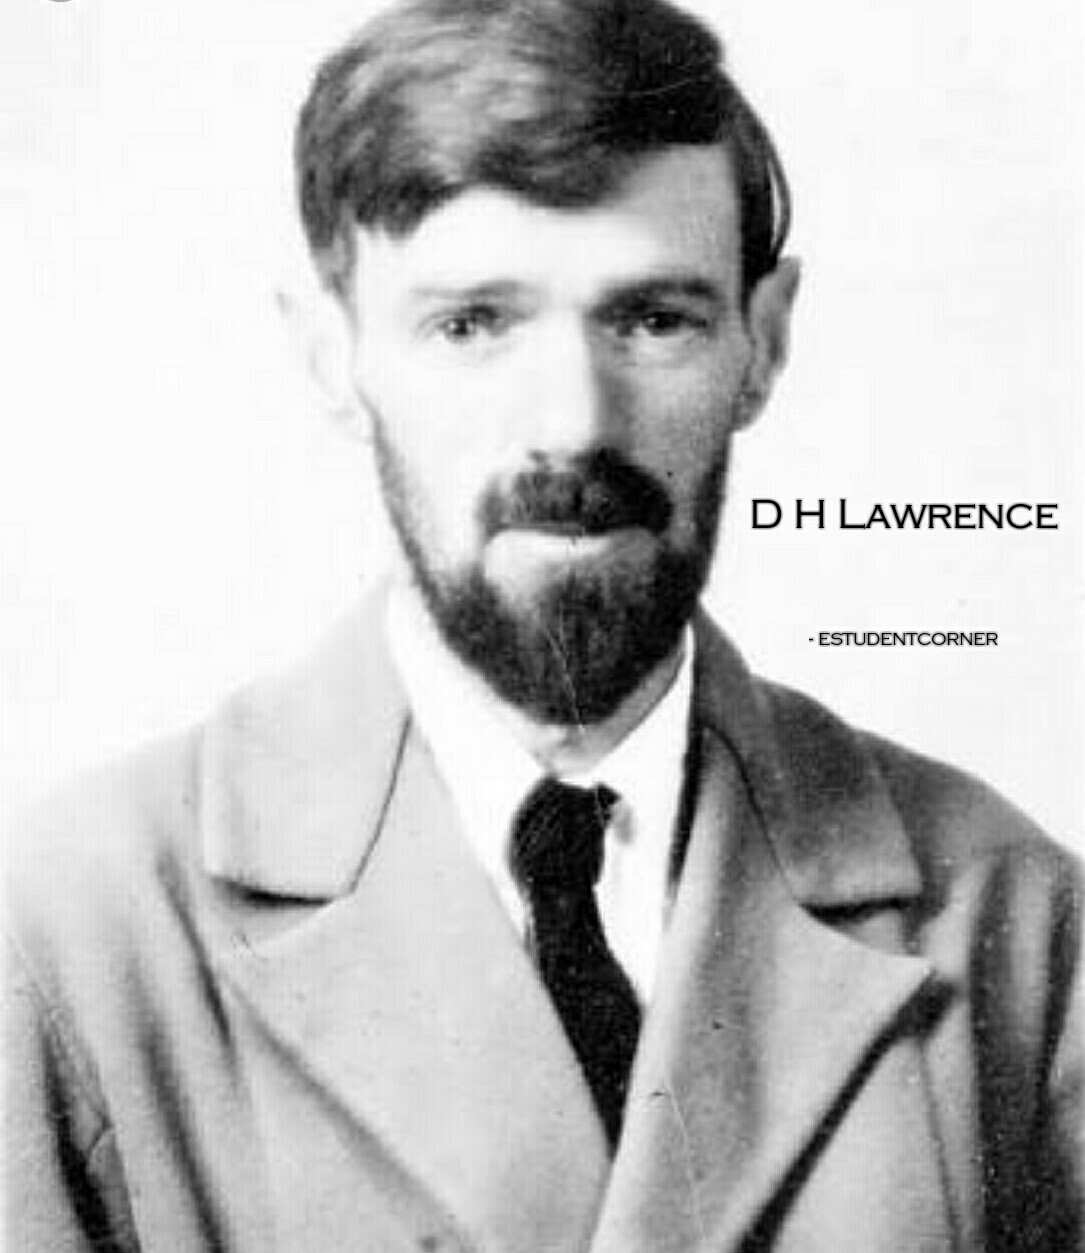 D H Lawrence Short Biography Wiki,Novels,Works,Short Summary Of Sons And Lovers, Meaning of the Term Oedipus Complex